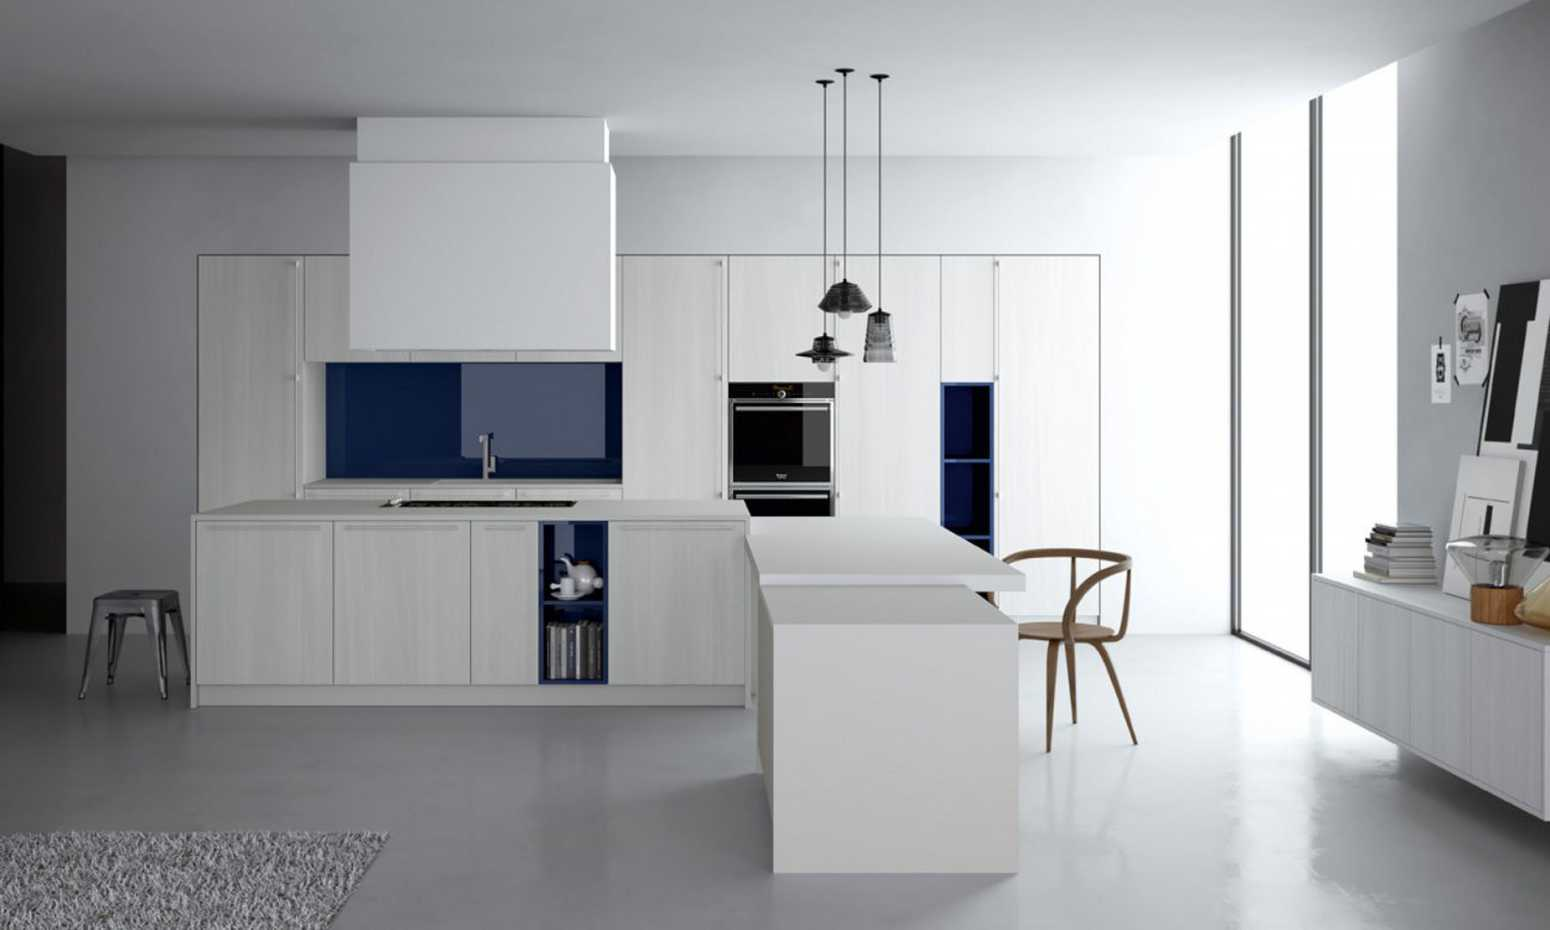 Easy by Doimo Cucine product image 2